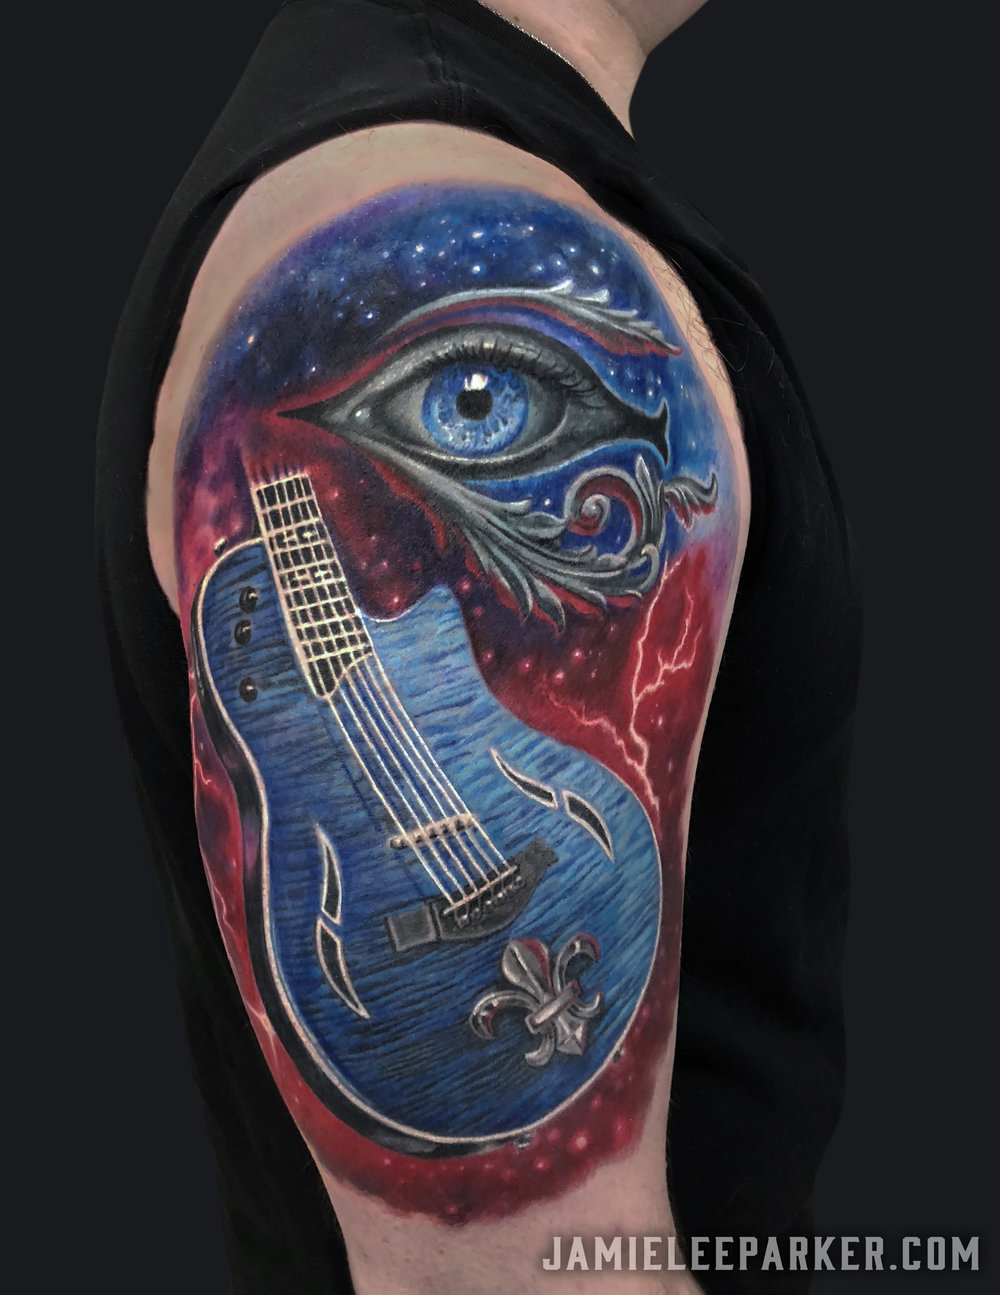 Electric Guitar & Eye